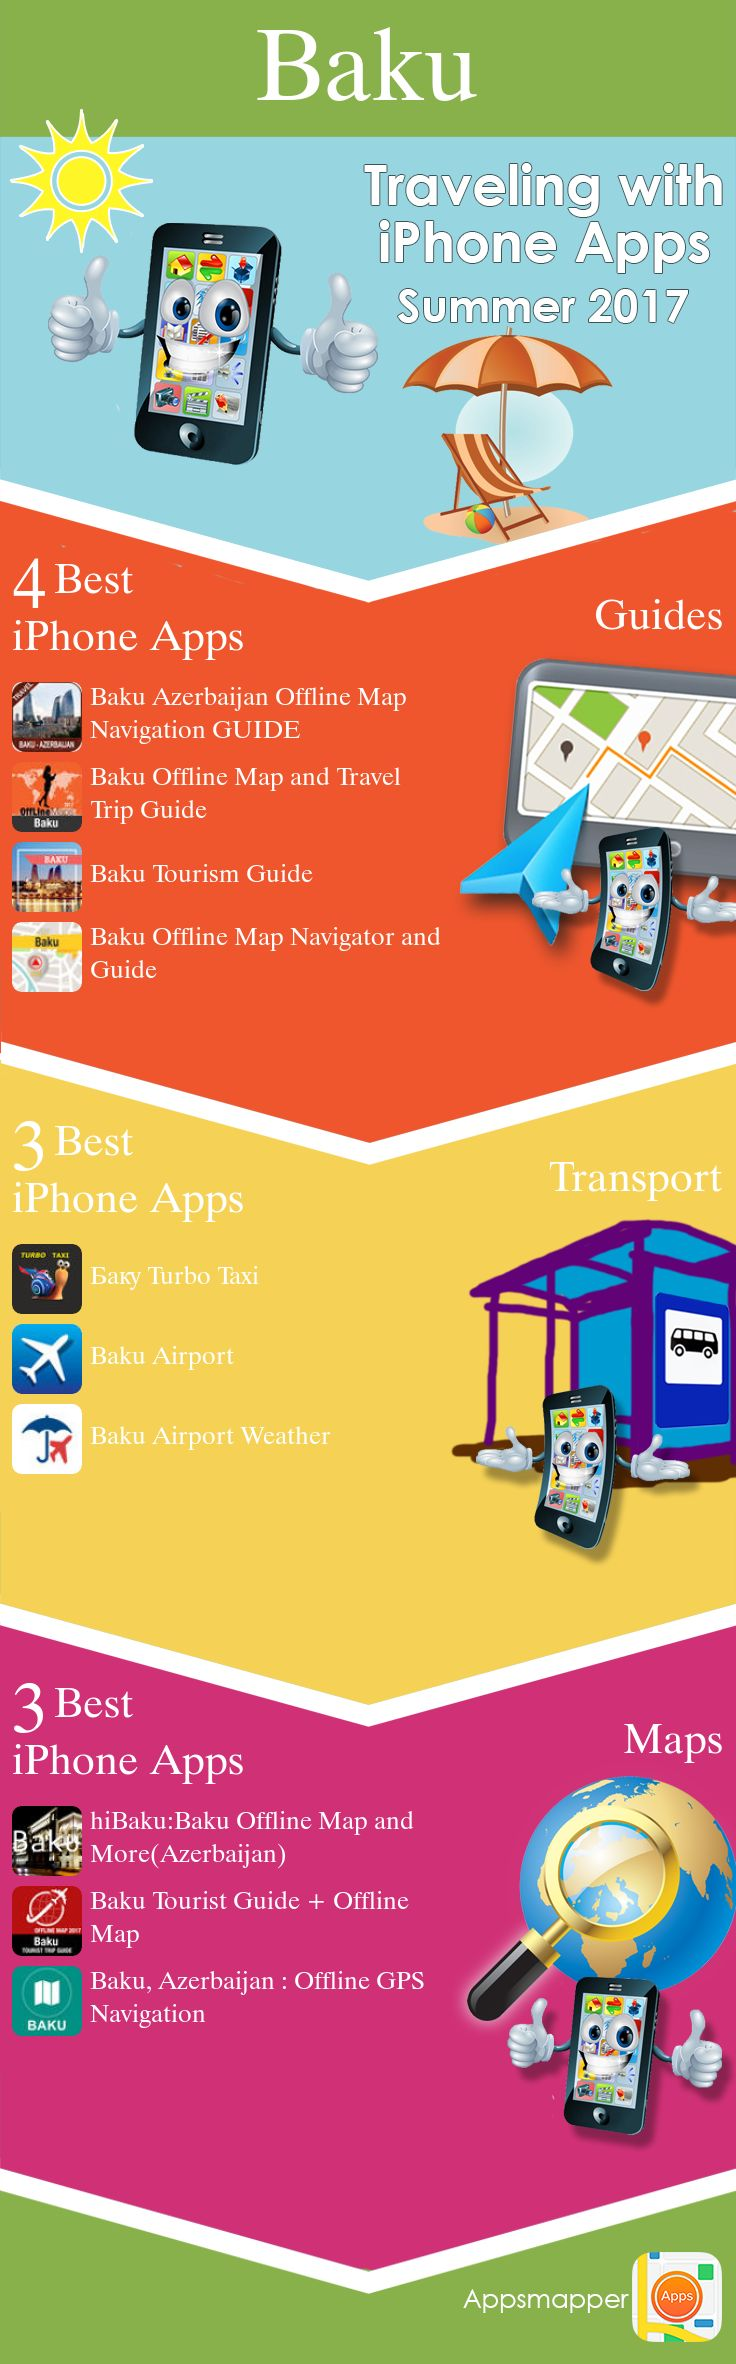 Baku iPhone apps: Travel Guides, Maps, Transportation, Biking, Museums, Parking, Sport and apps for Students.